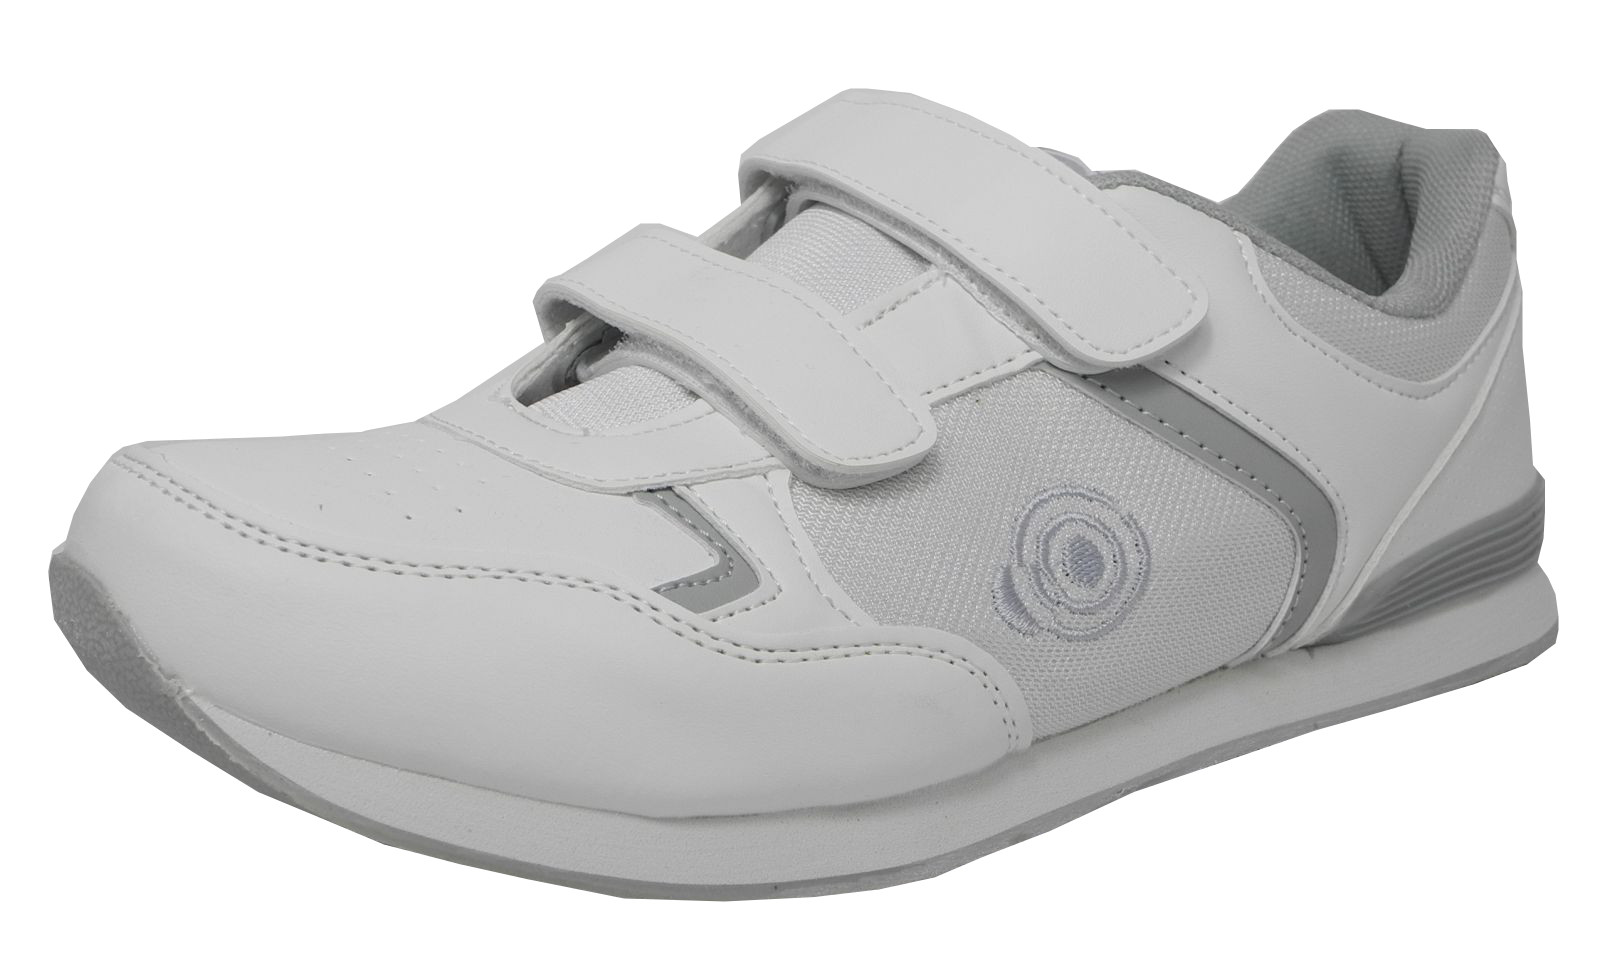 Mens Flat Sole Lightweight Bowls Shoes Bowling Trainers White Size 6 7 8 9 10 11